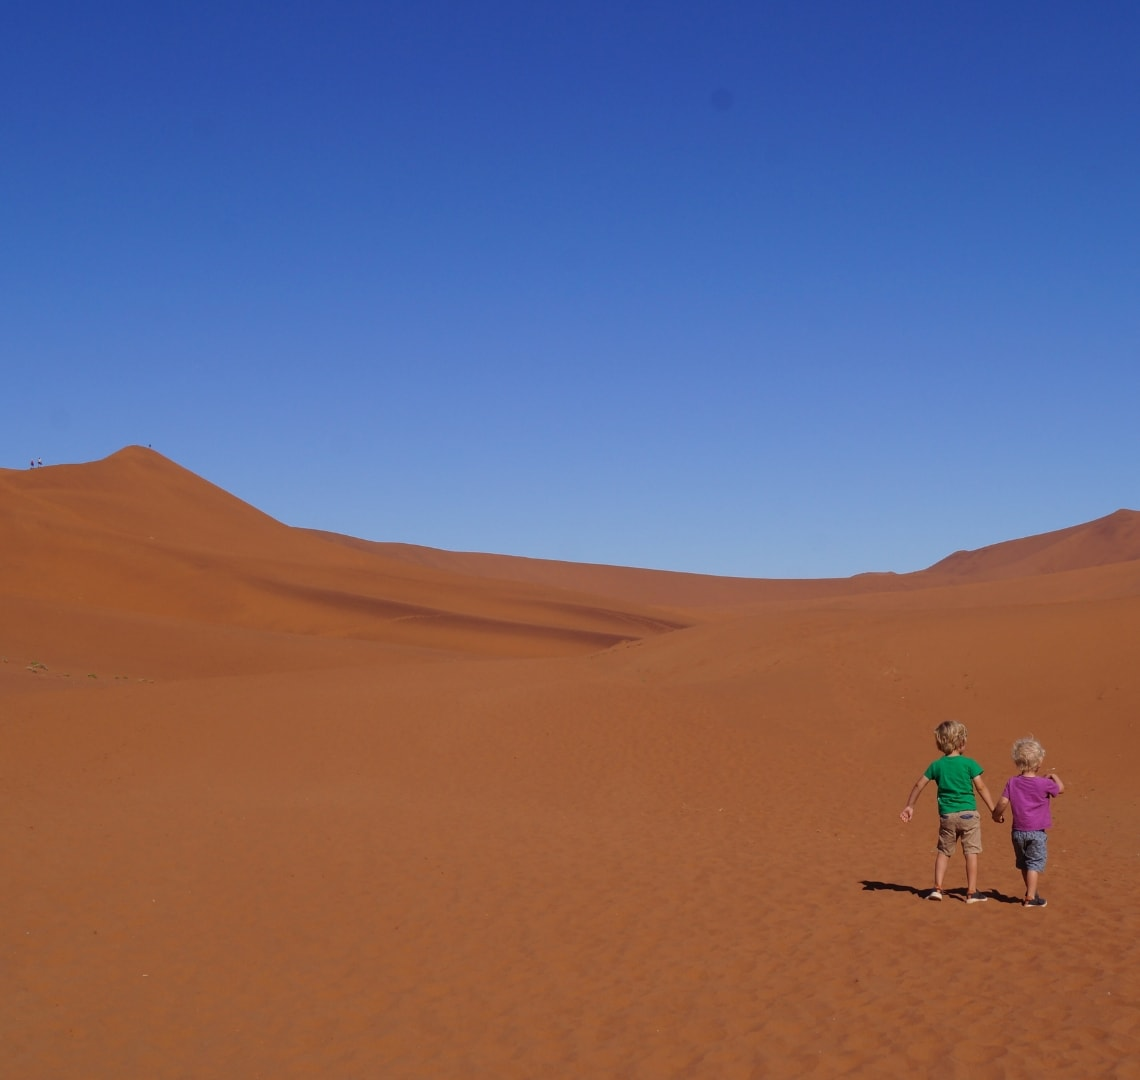 Best family holiday destinations - Travelynn Family's 2 sons exploring the Namibian red sand dunes